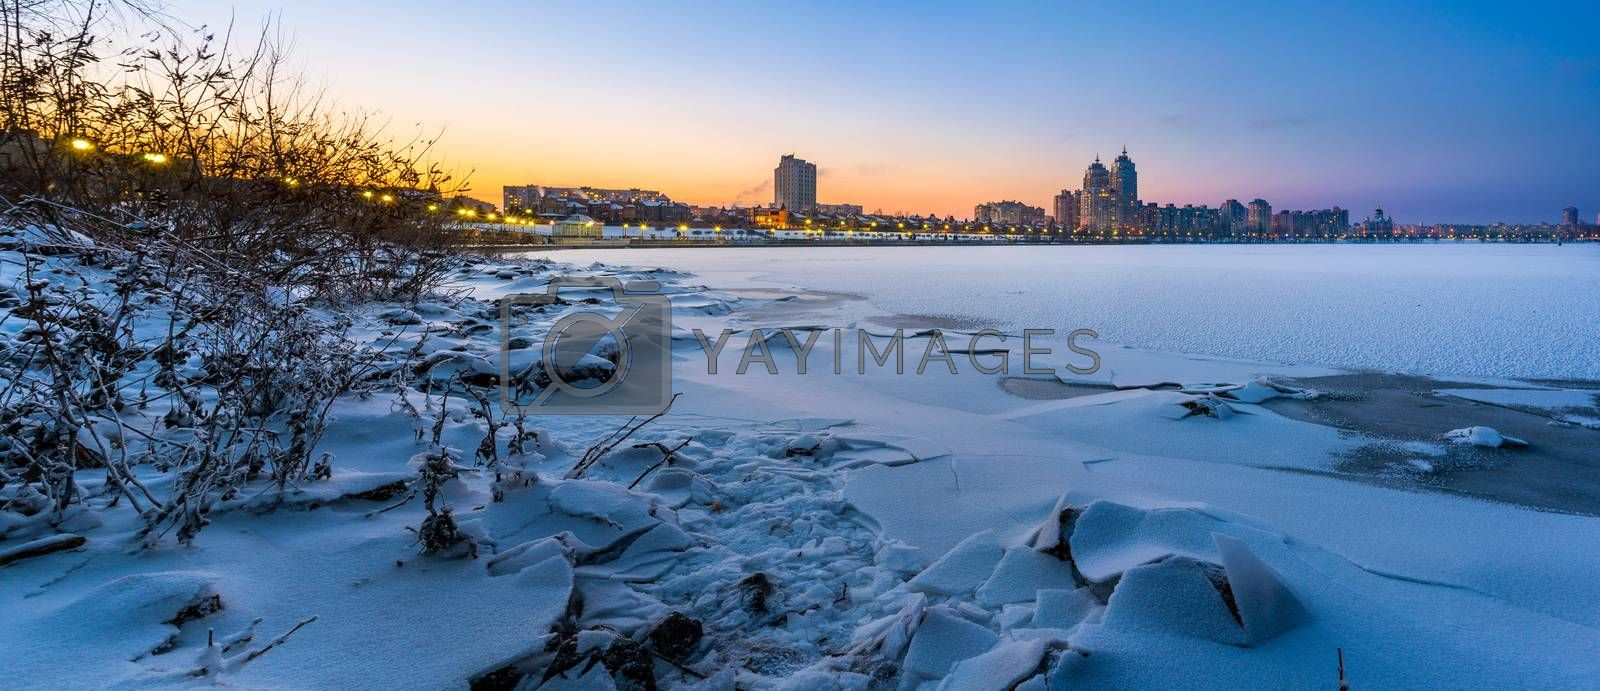 Cold Winter night cityscape with illuminated buildings in Kiev, Ukraine. The frozen Dnieper river appears in the foreground